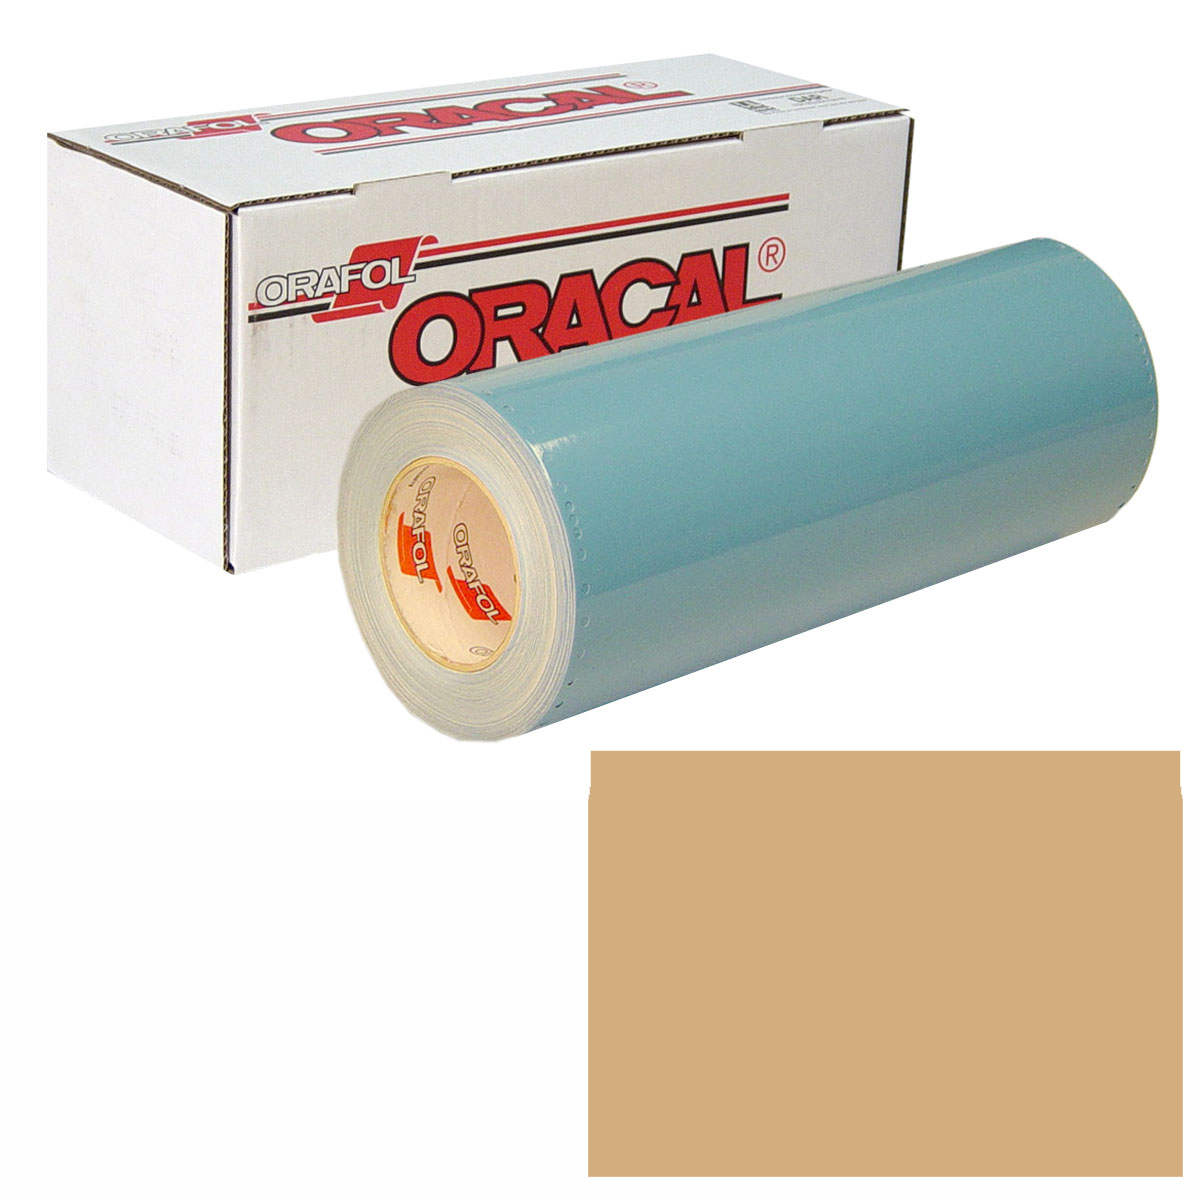 ORACAL 751 Unp 24in X 10yd 081 Light Brown